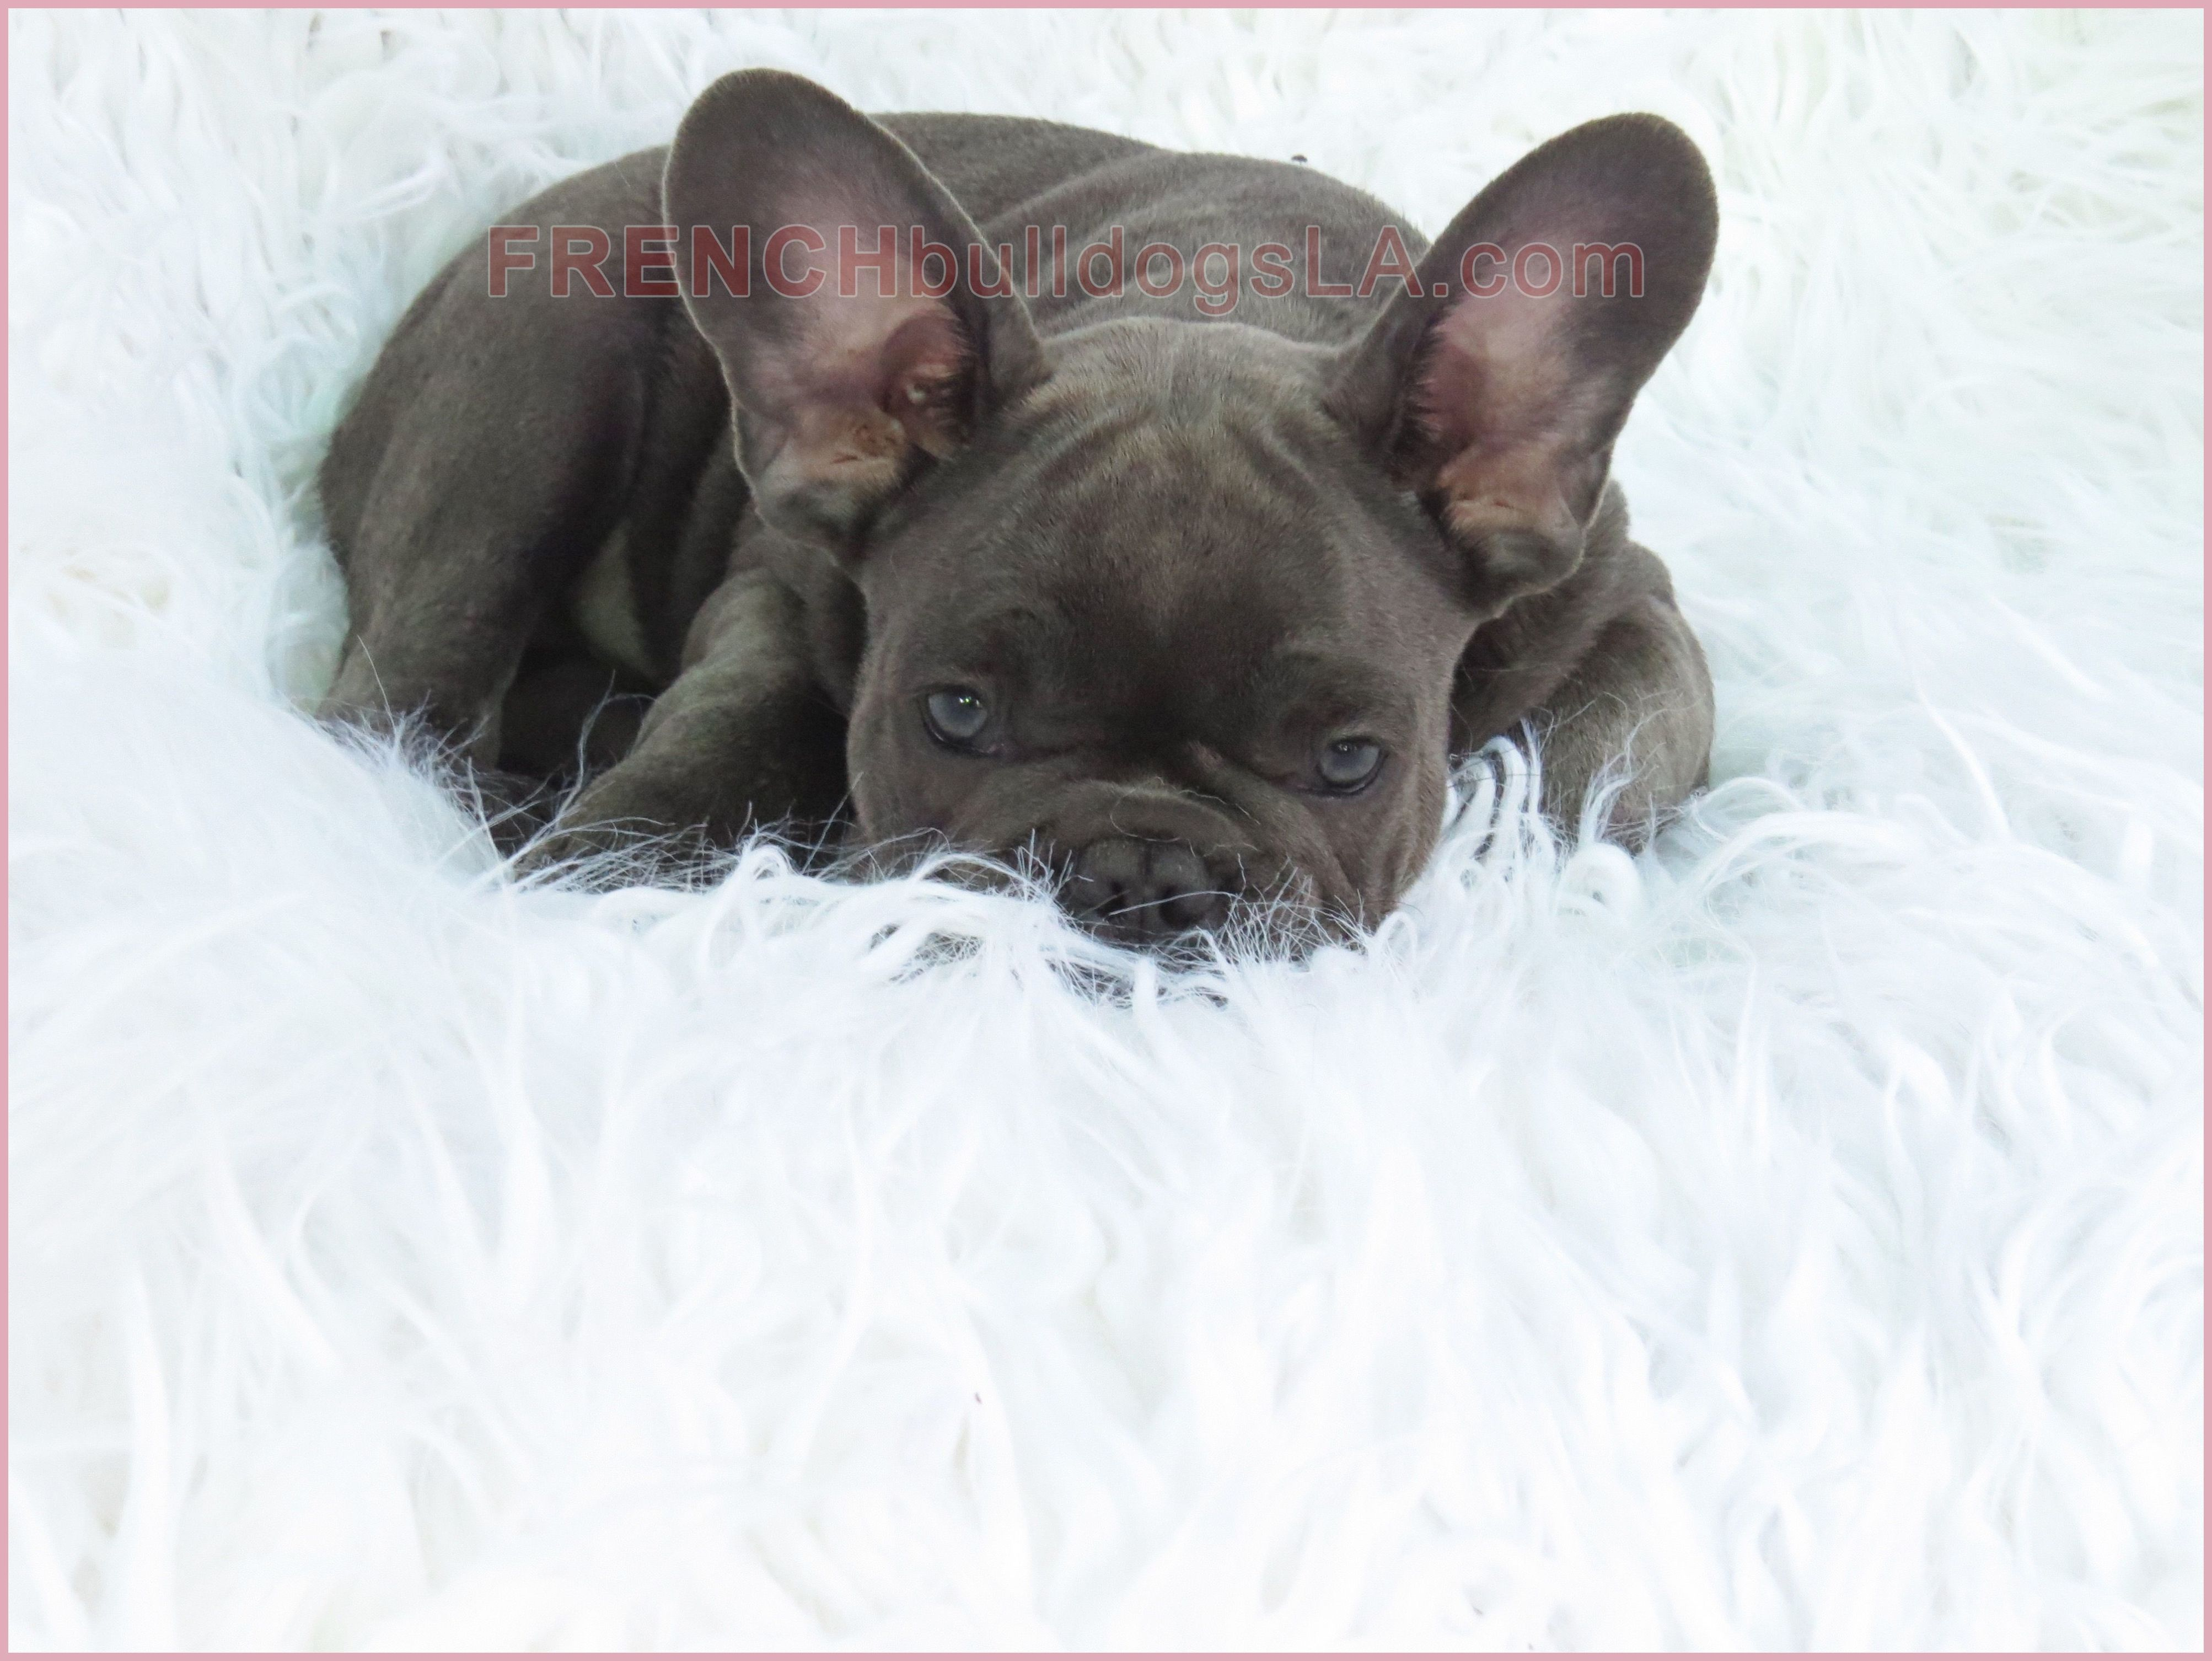 French Bulldogs Average Around Three Young Puppies Per Litter